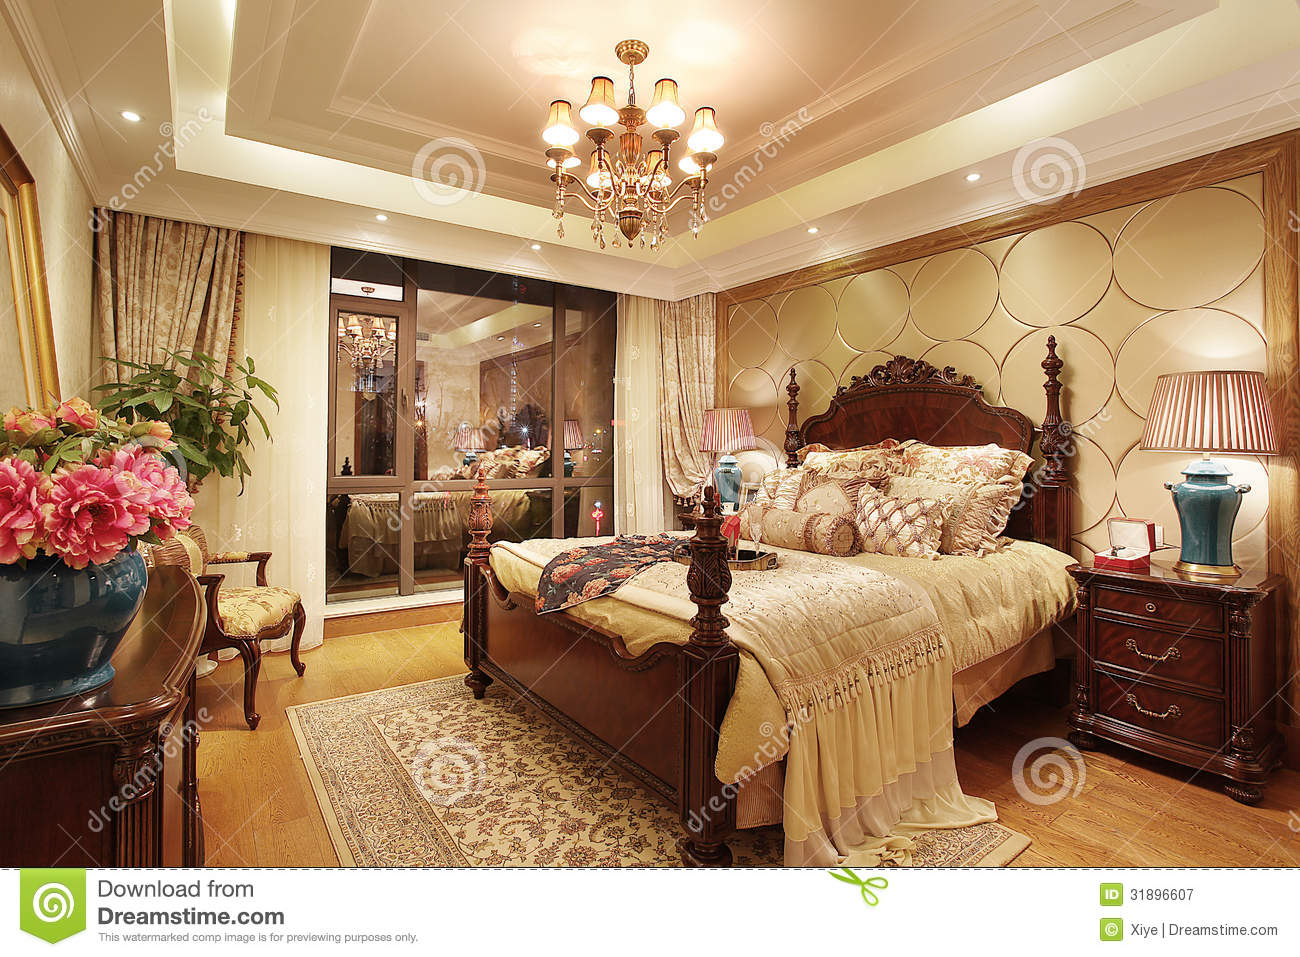 Colori Pareti Camera Da Letto Classica.Classical Bedroom Stock Image Image Of Room Luxury 31896607